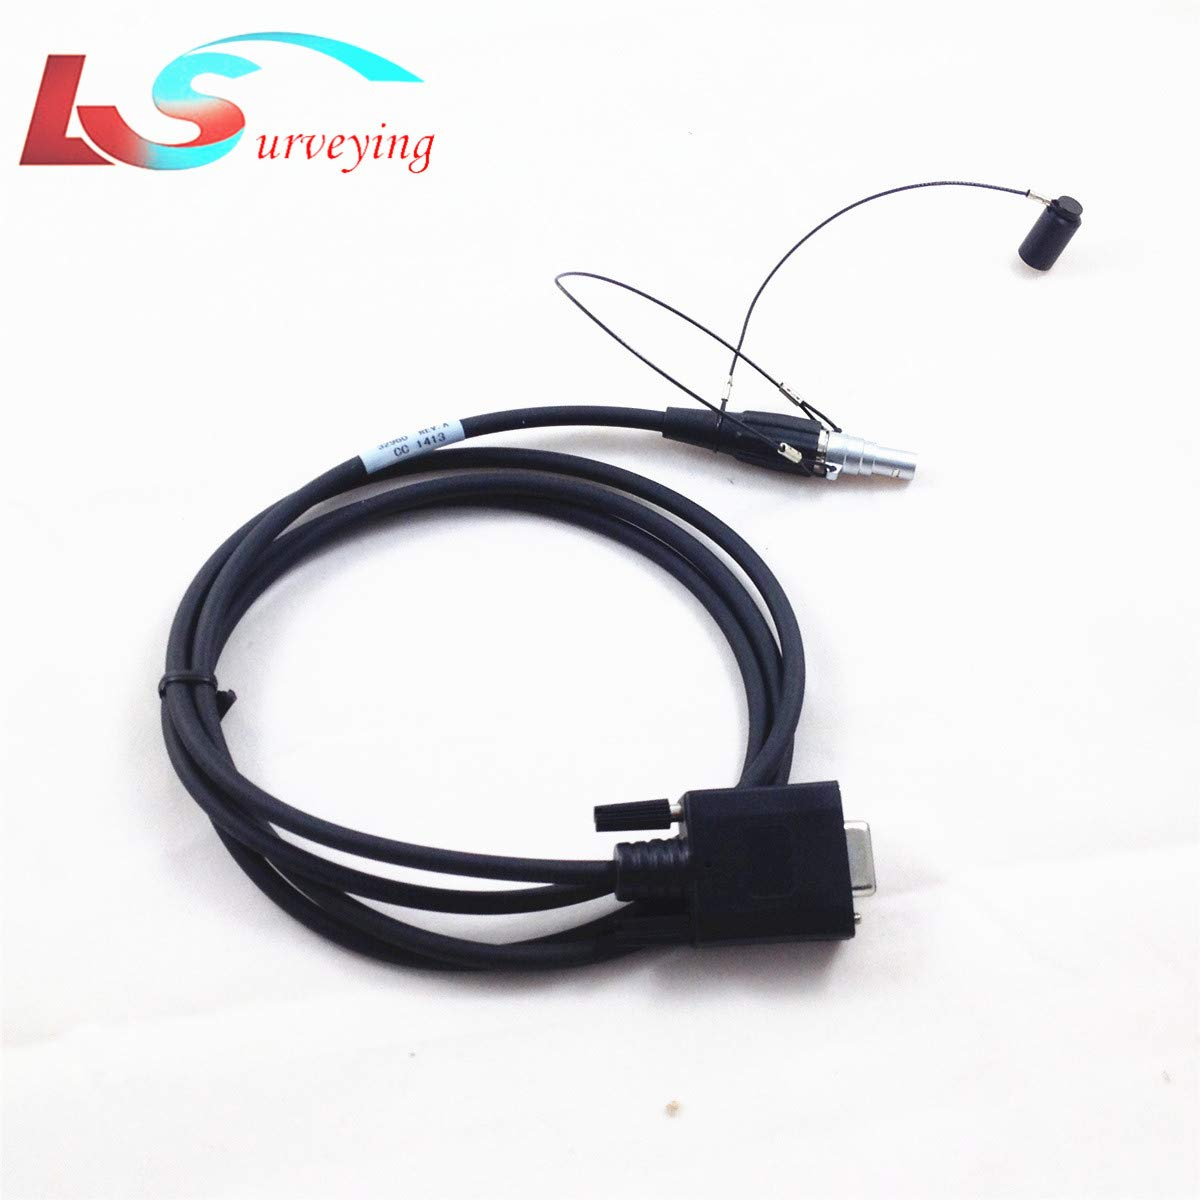 New Trimble 5700 5800 R7 R8 GPS 7 pin Data Cable Frequency Modulation Cable 32960